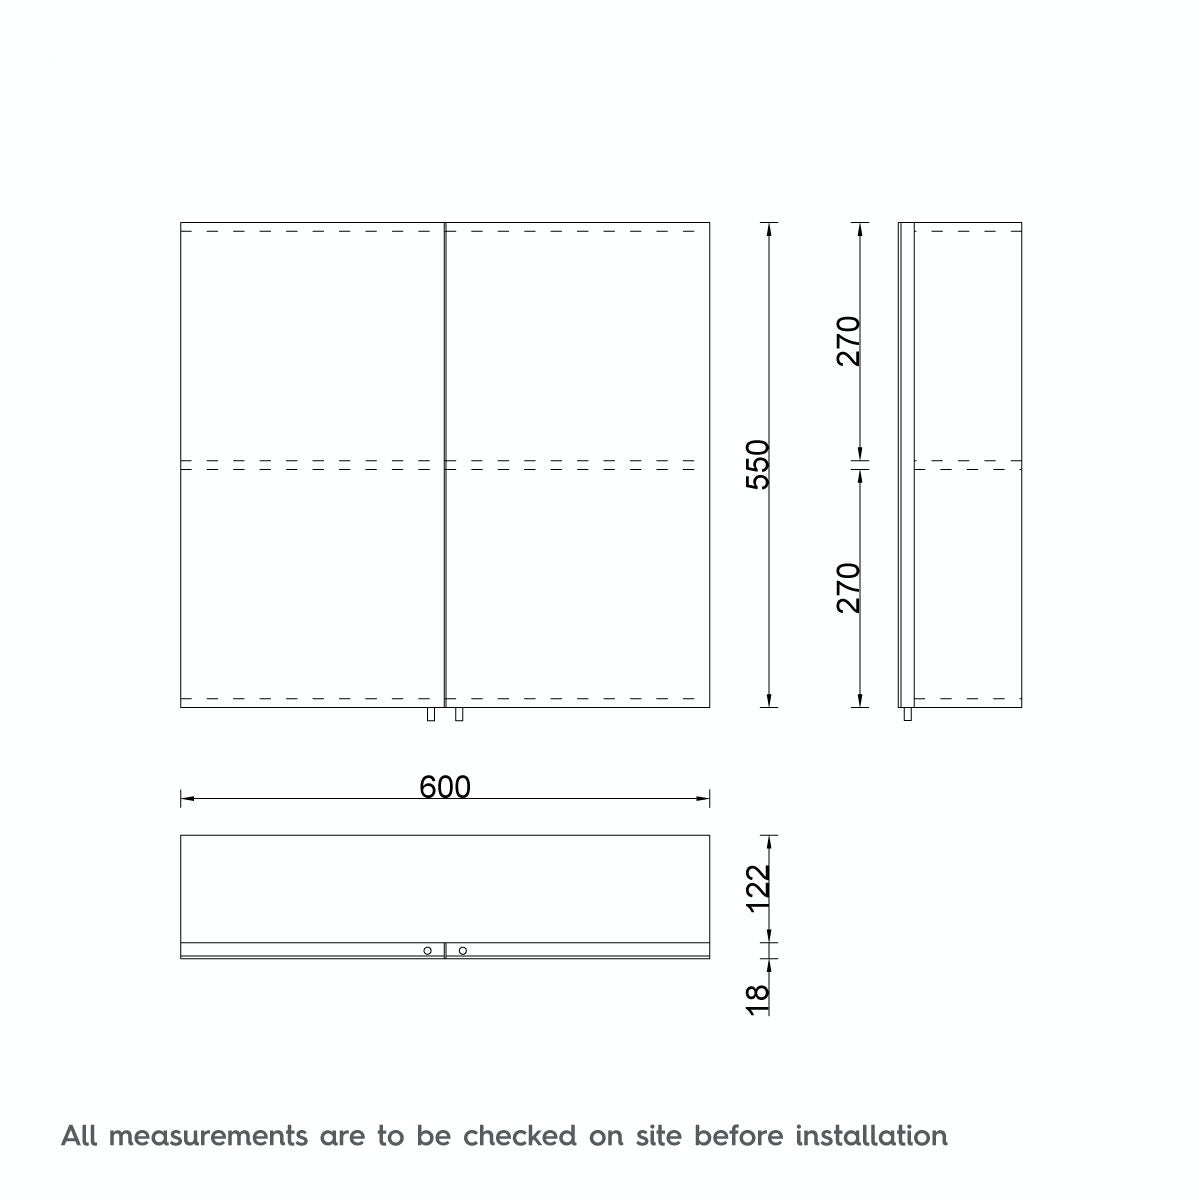 Dimensions for Emperor stainless steel bathroom cabinet 600 x 550